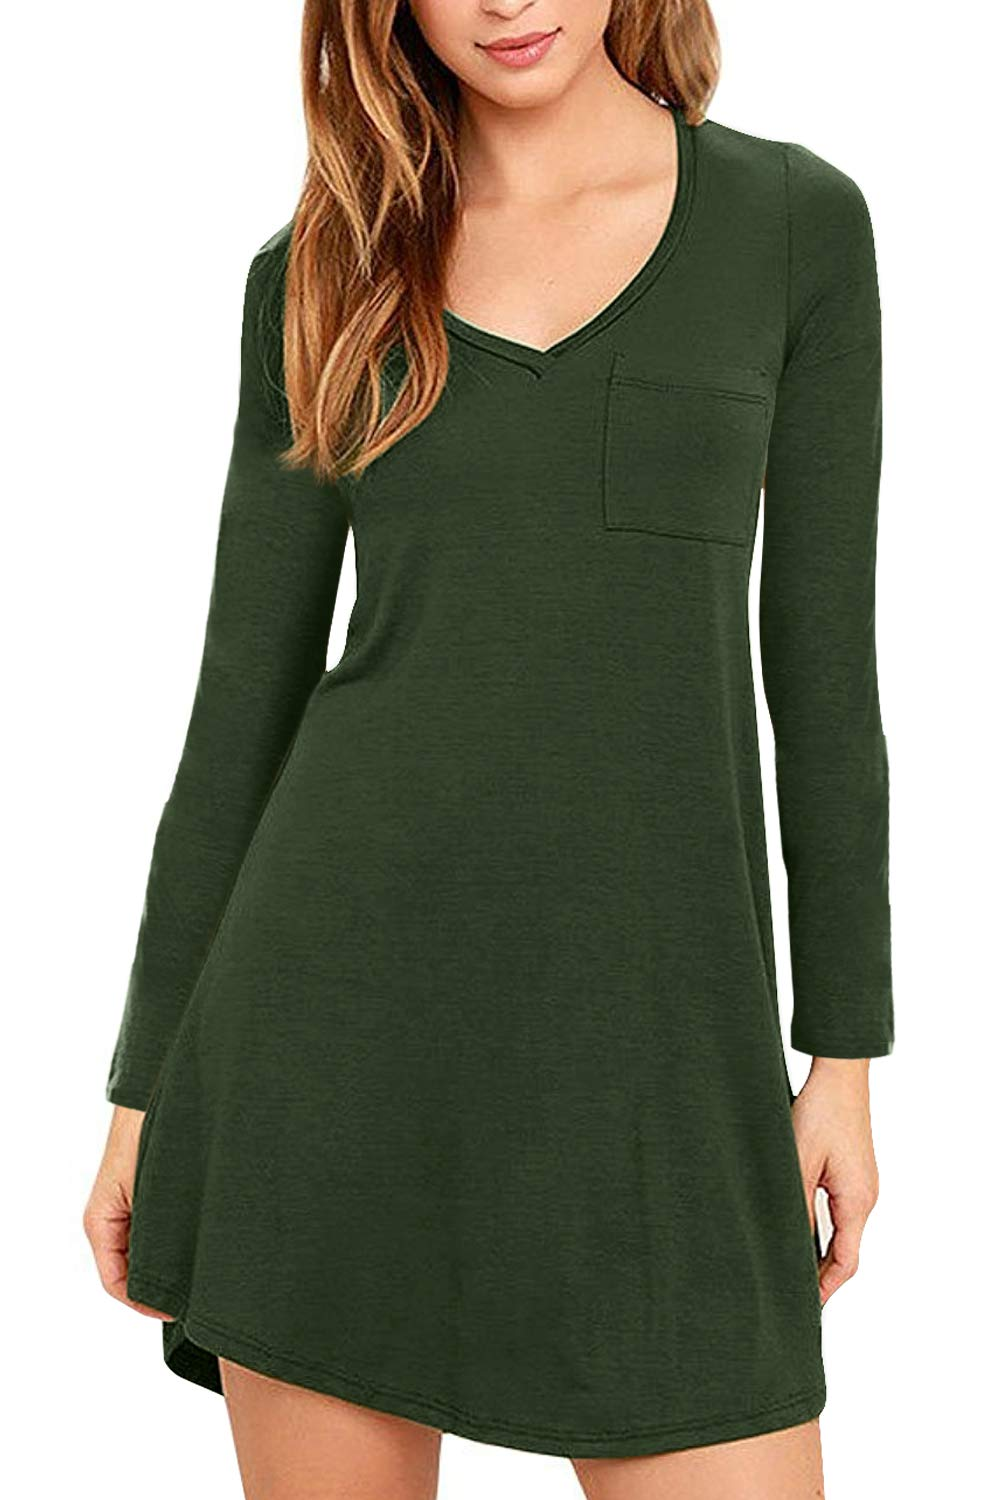 Eanklosco Womens Casual Short Sleeve Plain Pocket V Neck T Shirt Tunic Dress (Green-1, M)